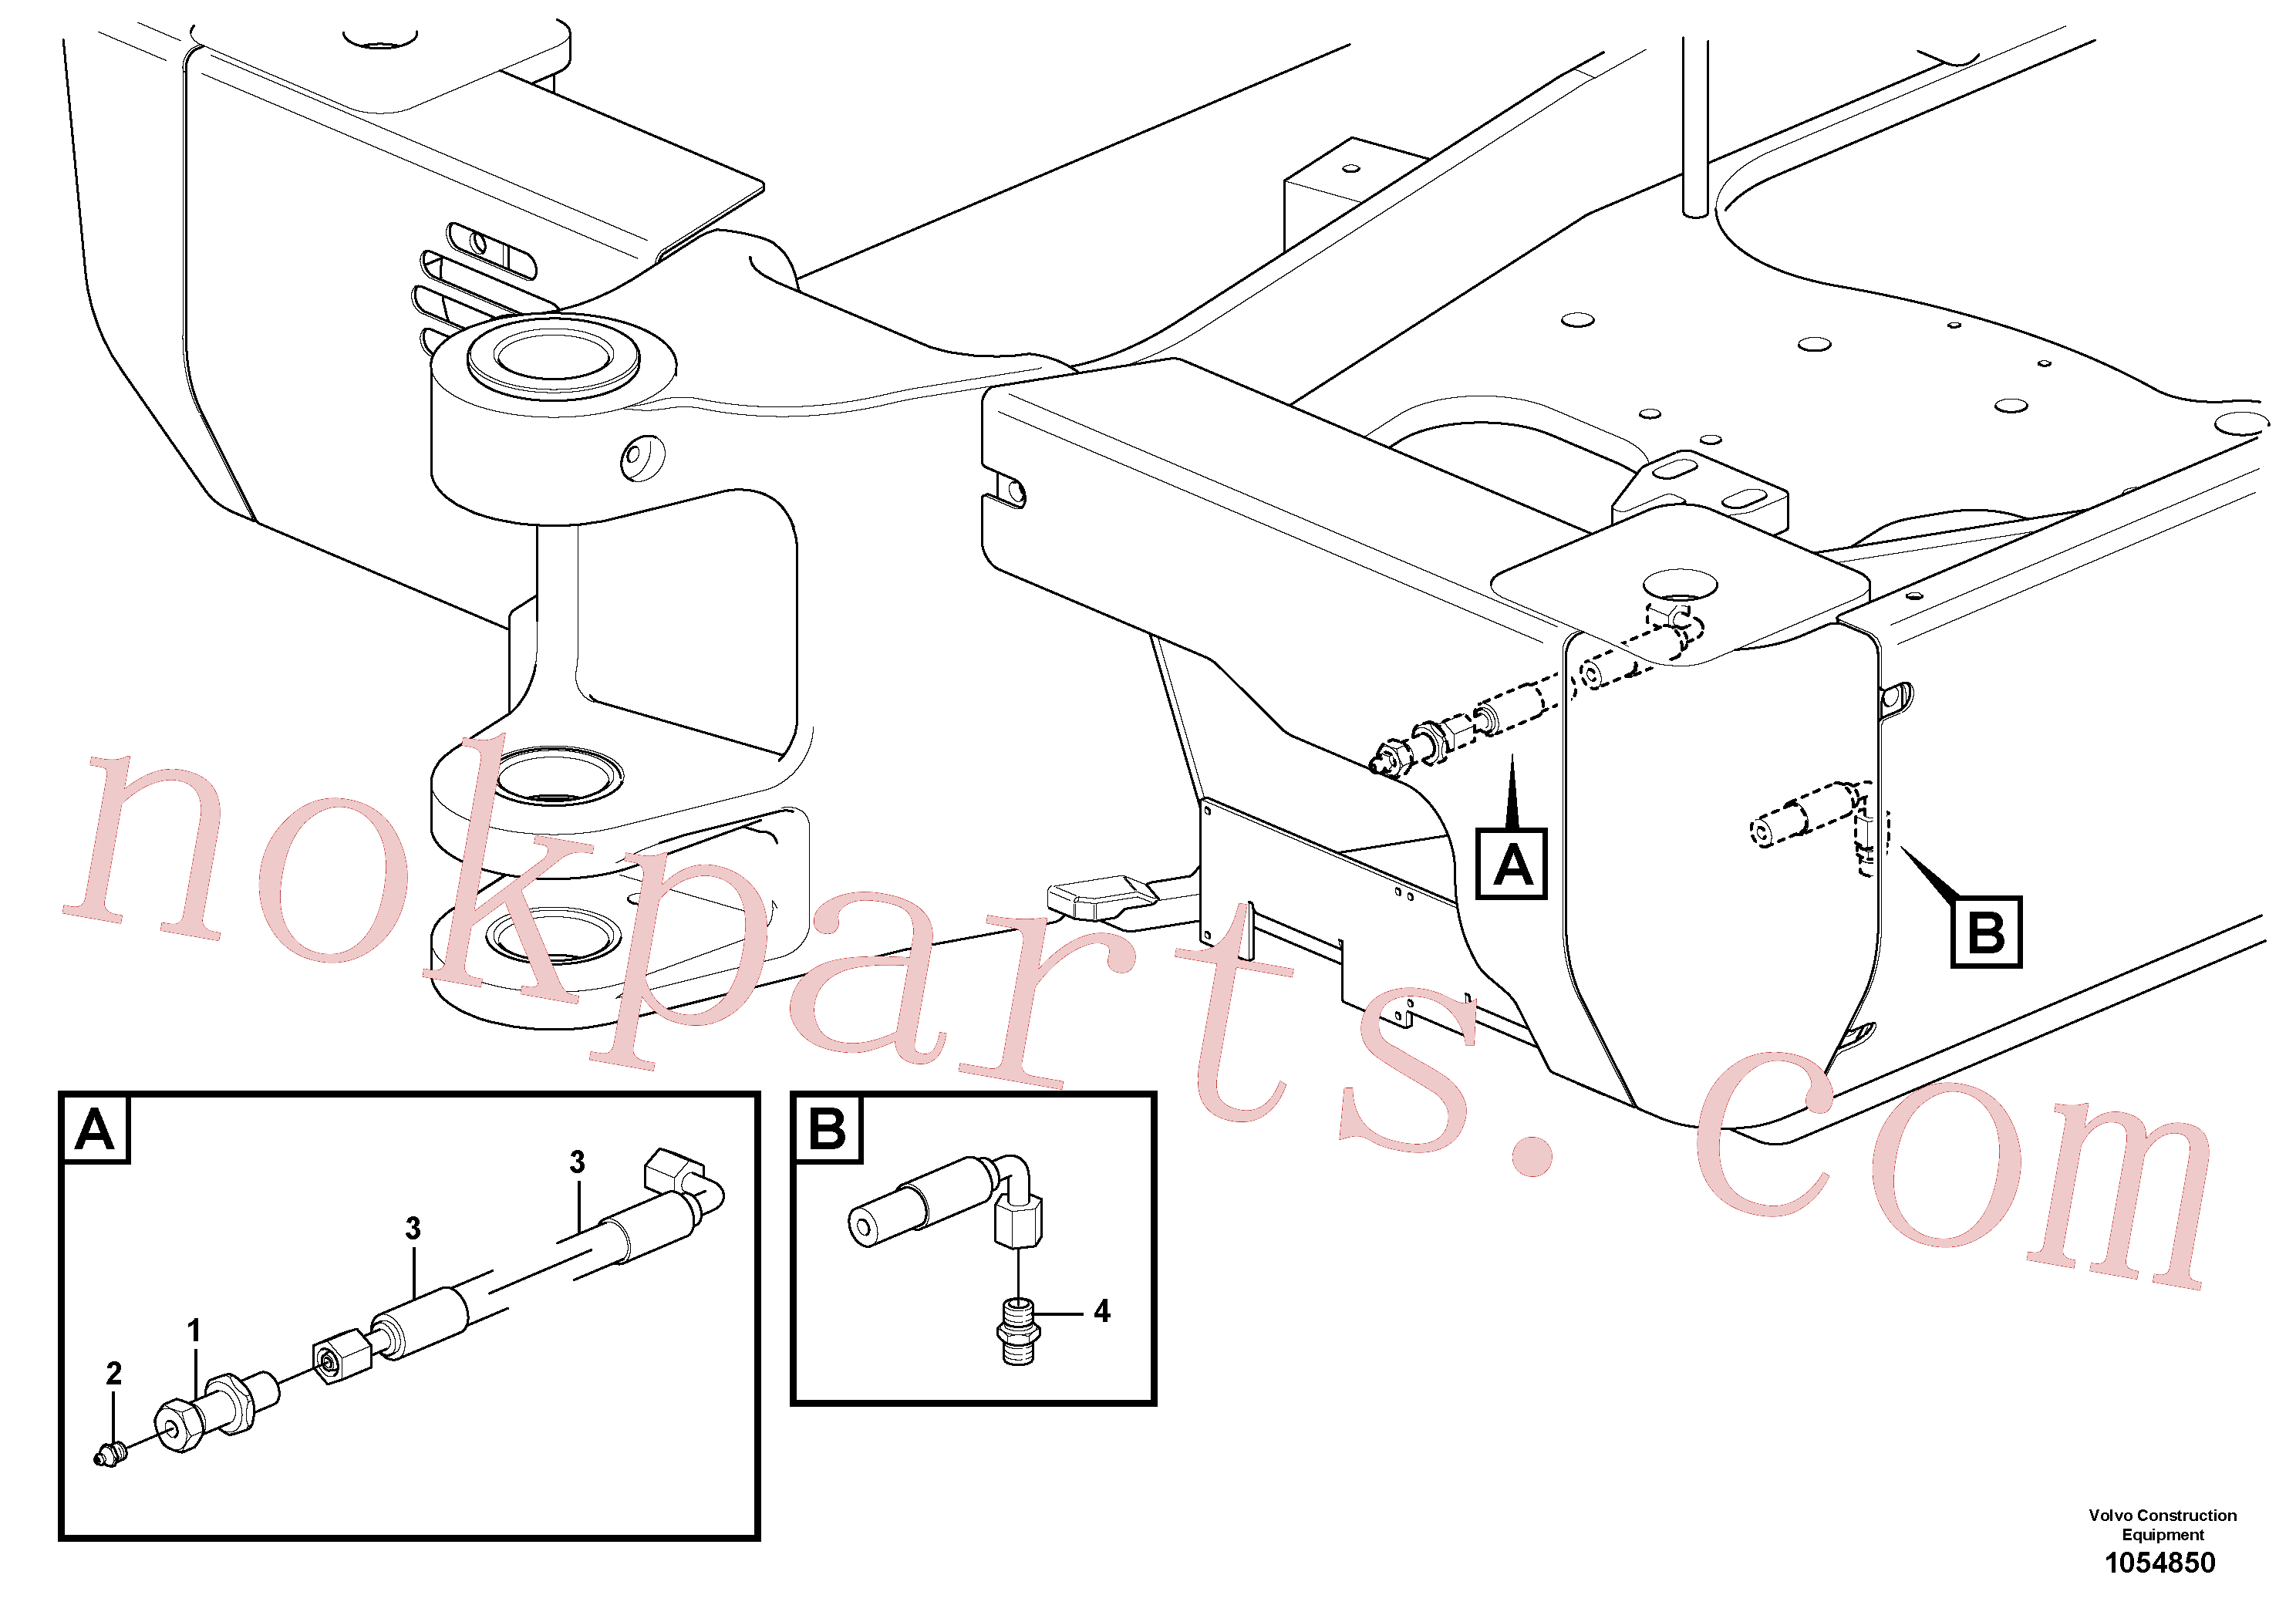 VOE11802456 for Volvo Lubrication(1054850 assembly)